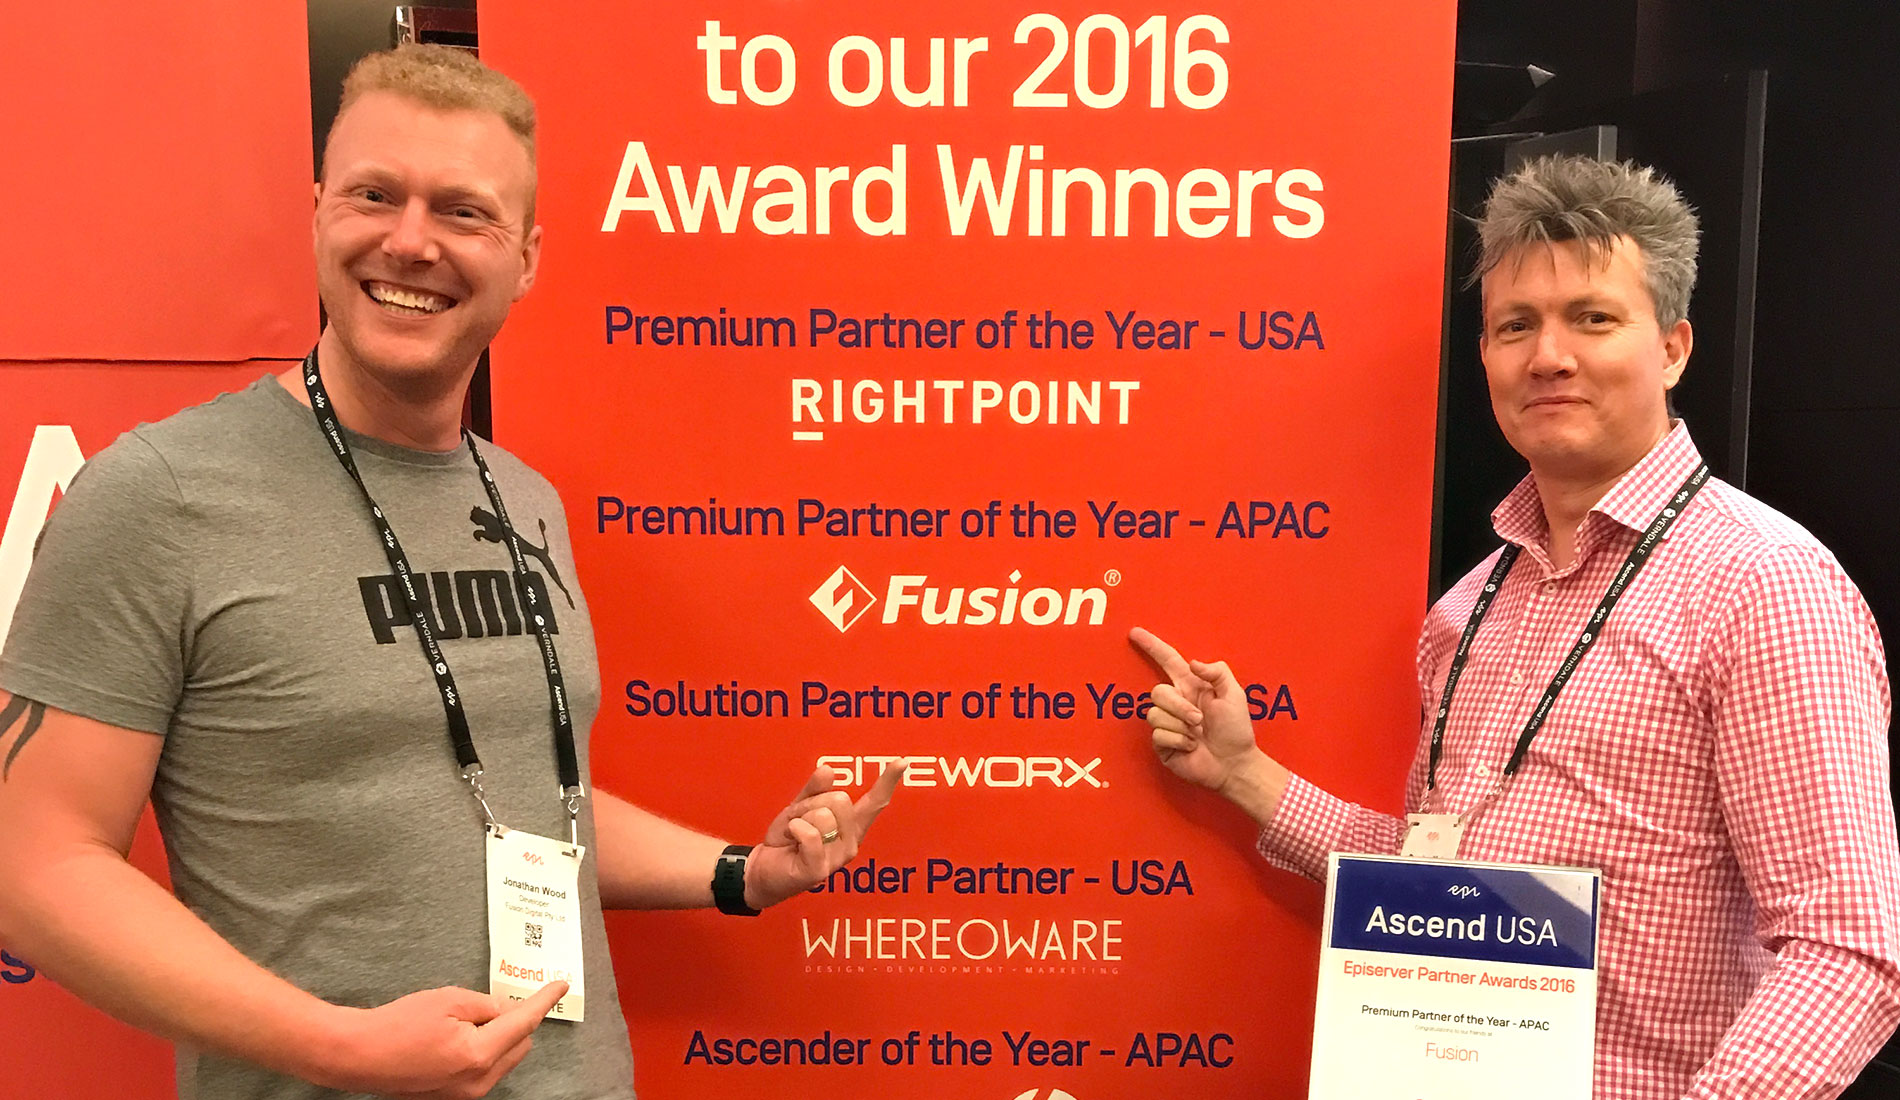 Fusion awarded global accolade at the 2017 Epi Ascend Awards